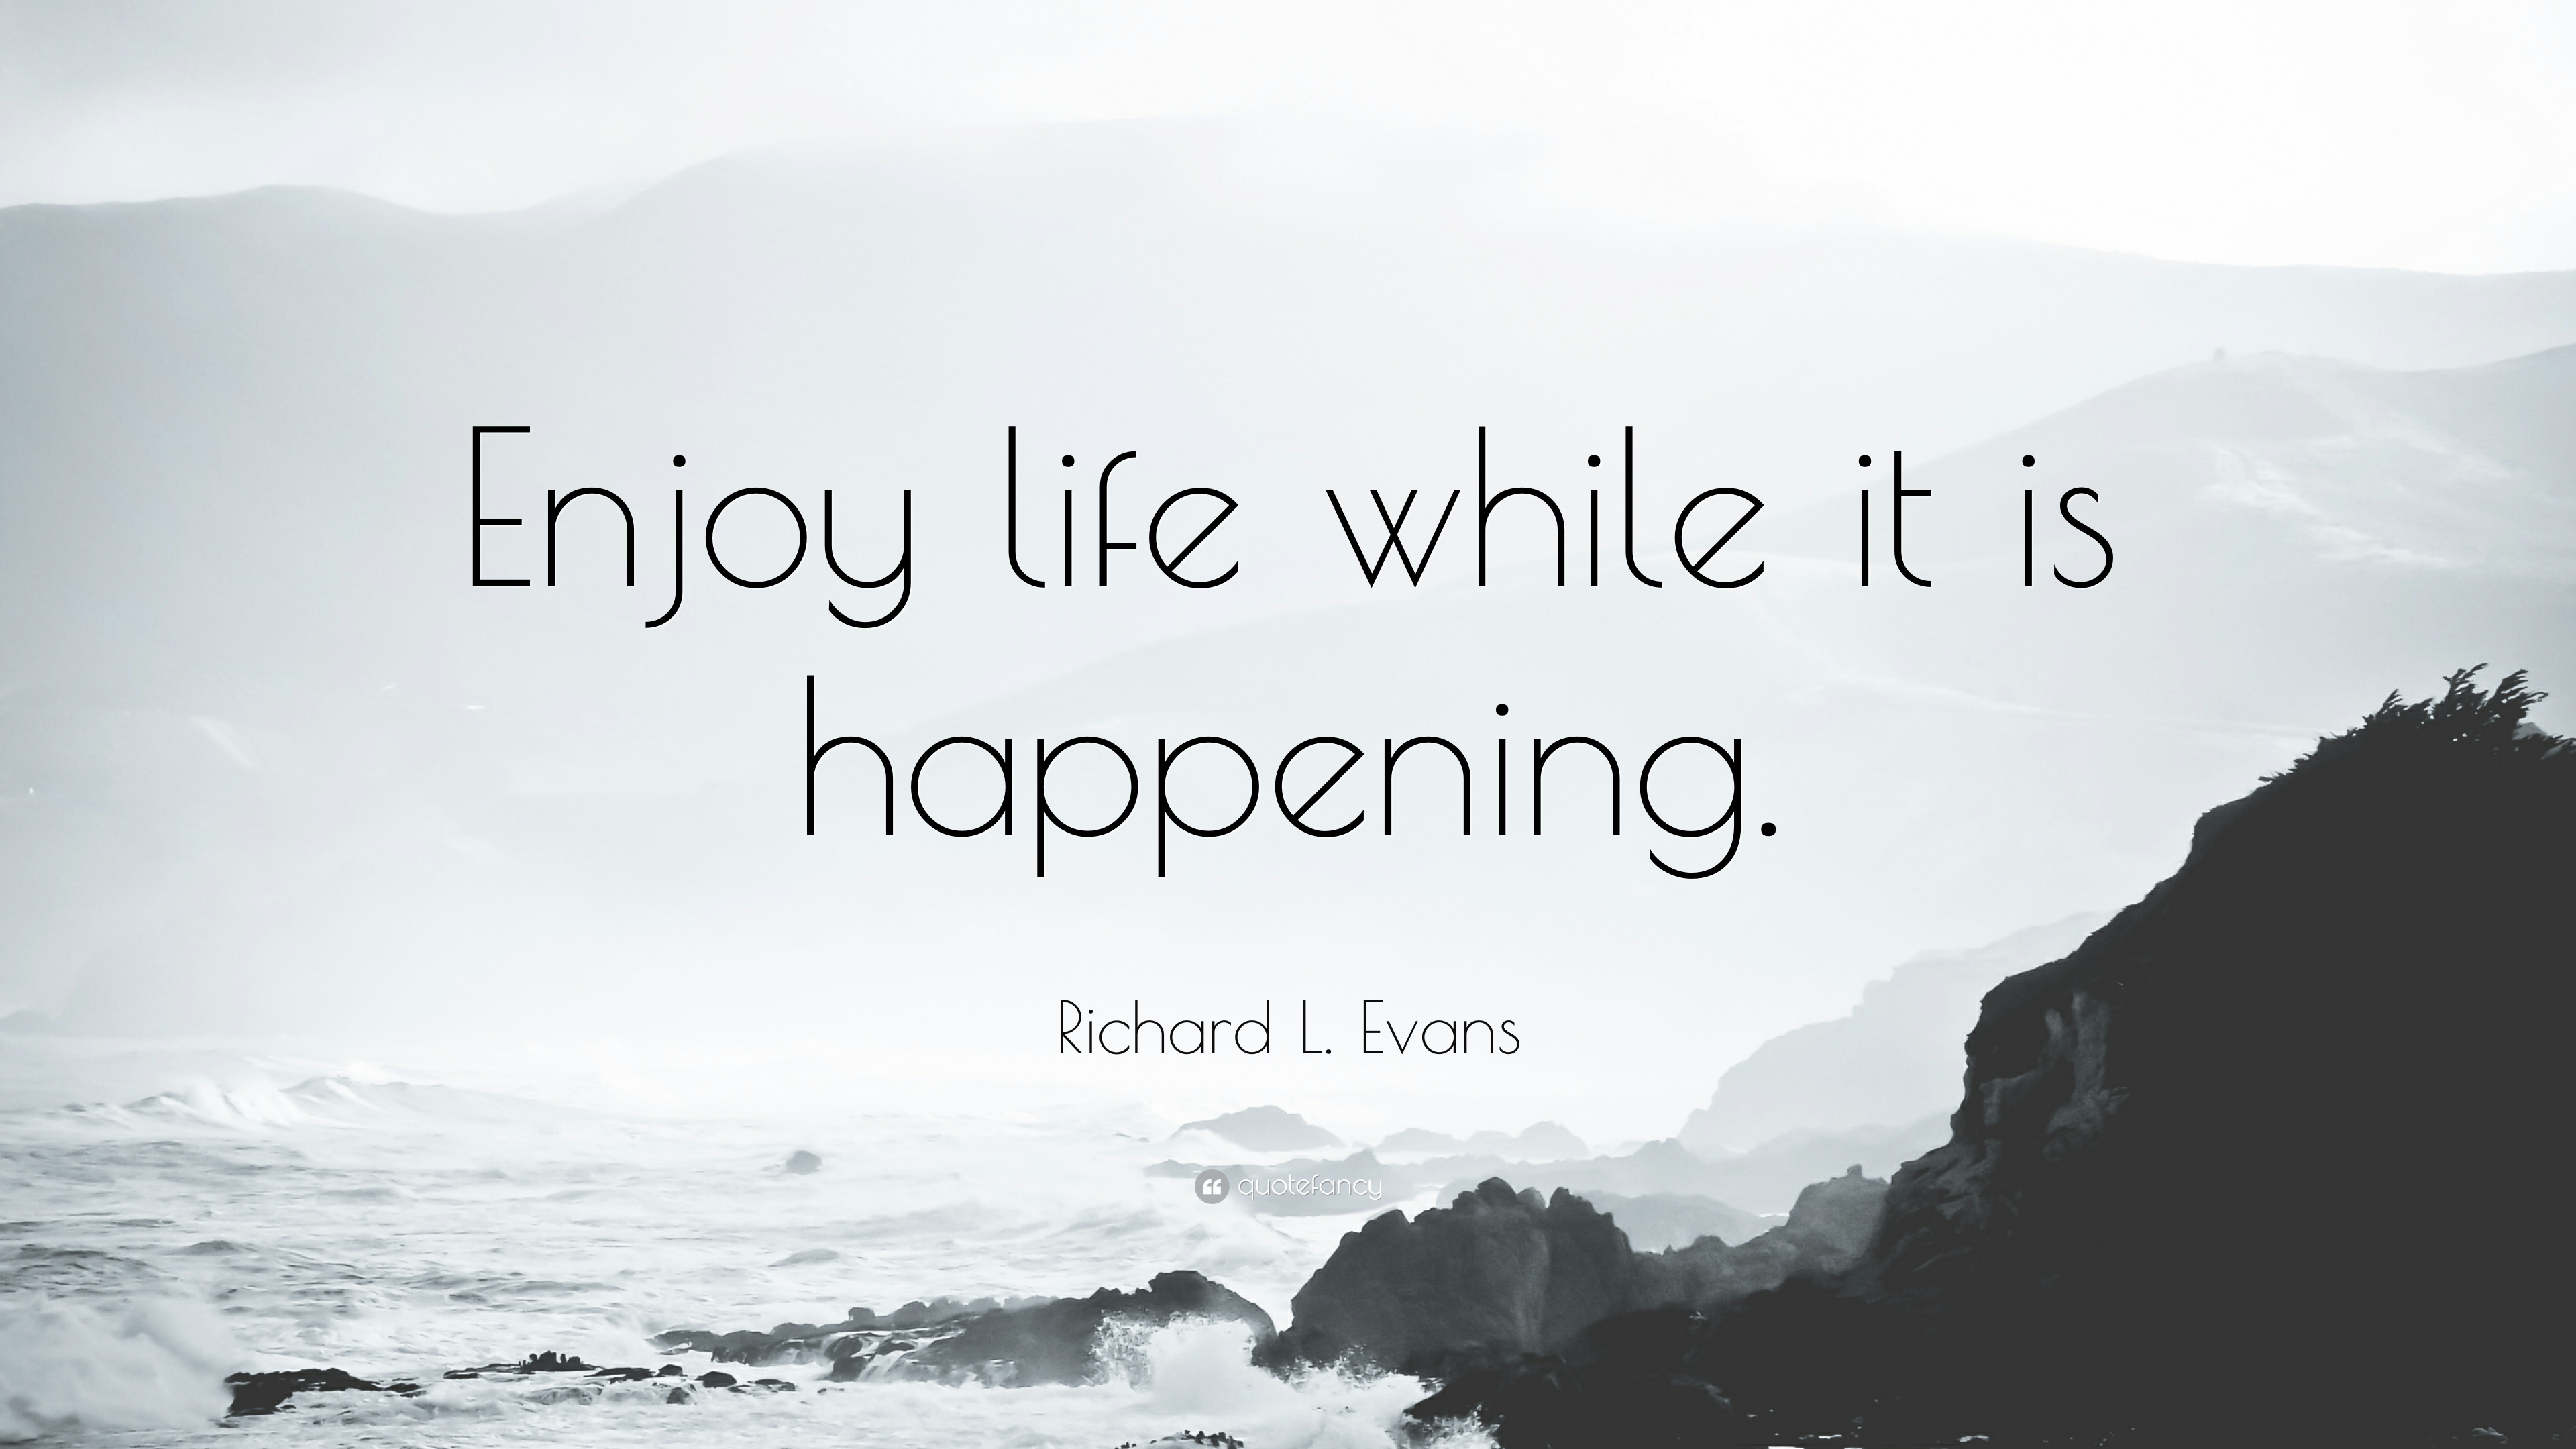 Richard L Evans Quote Enjoy Life While It Is Happening 7 Wallpapers Quotefancy